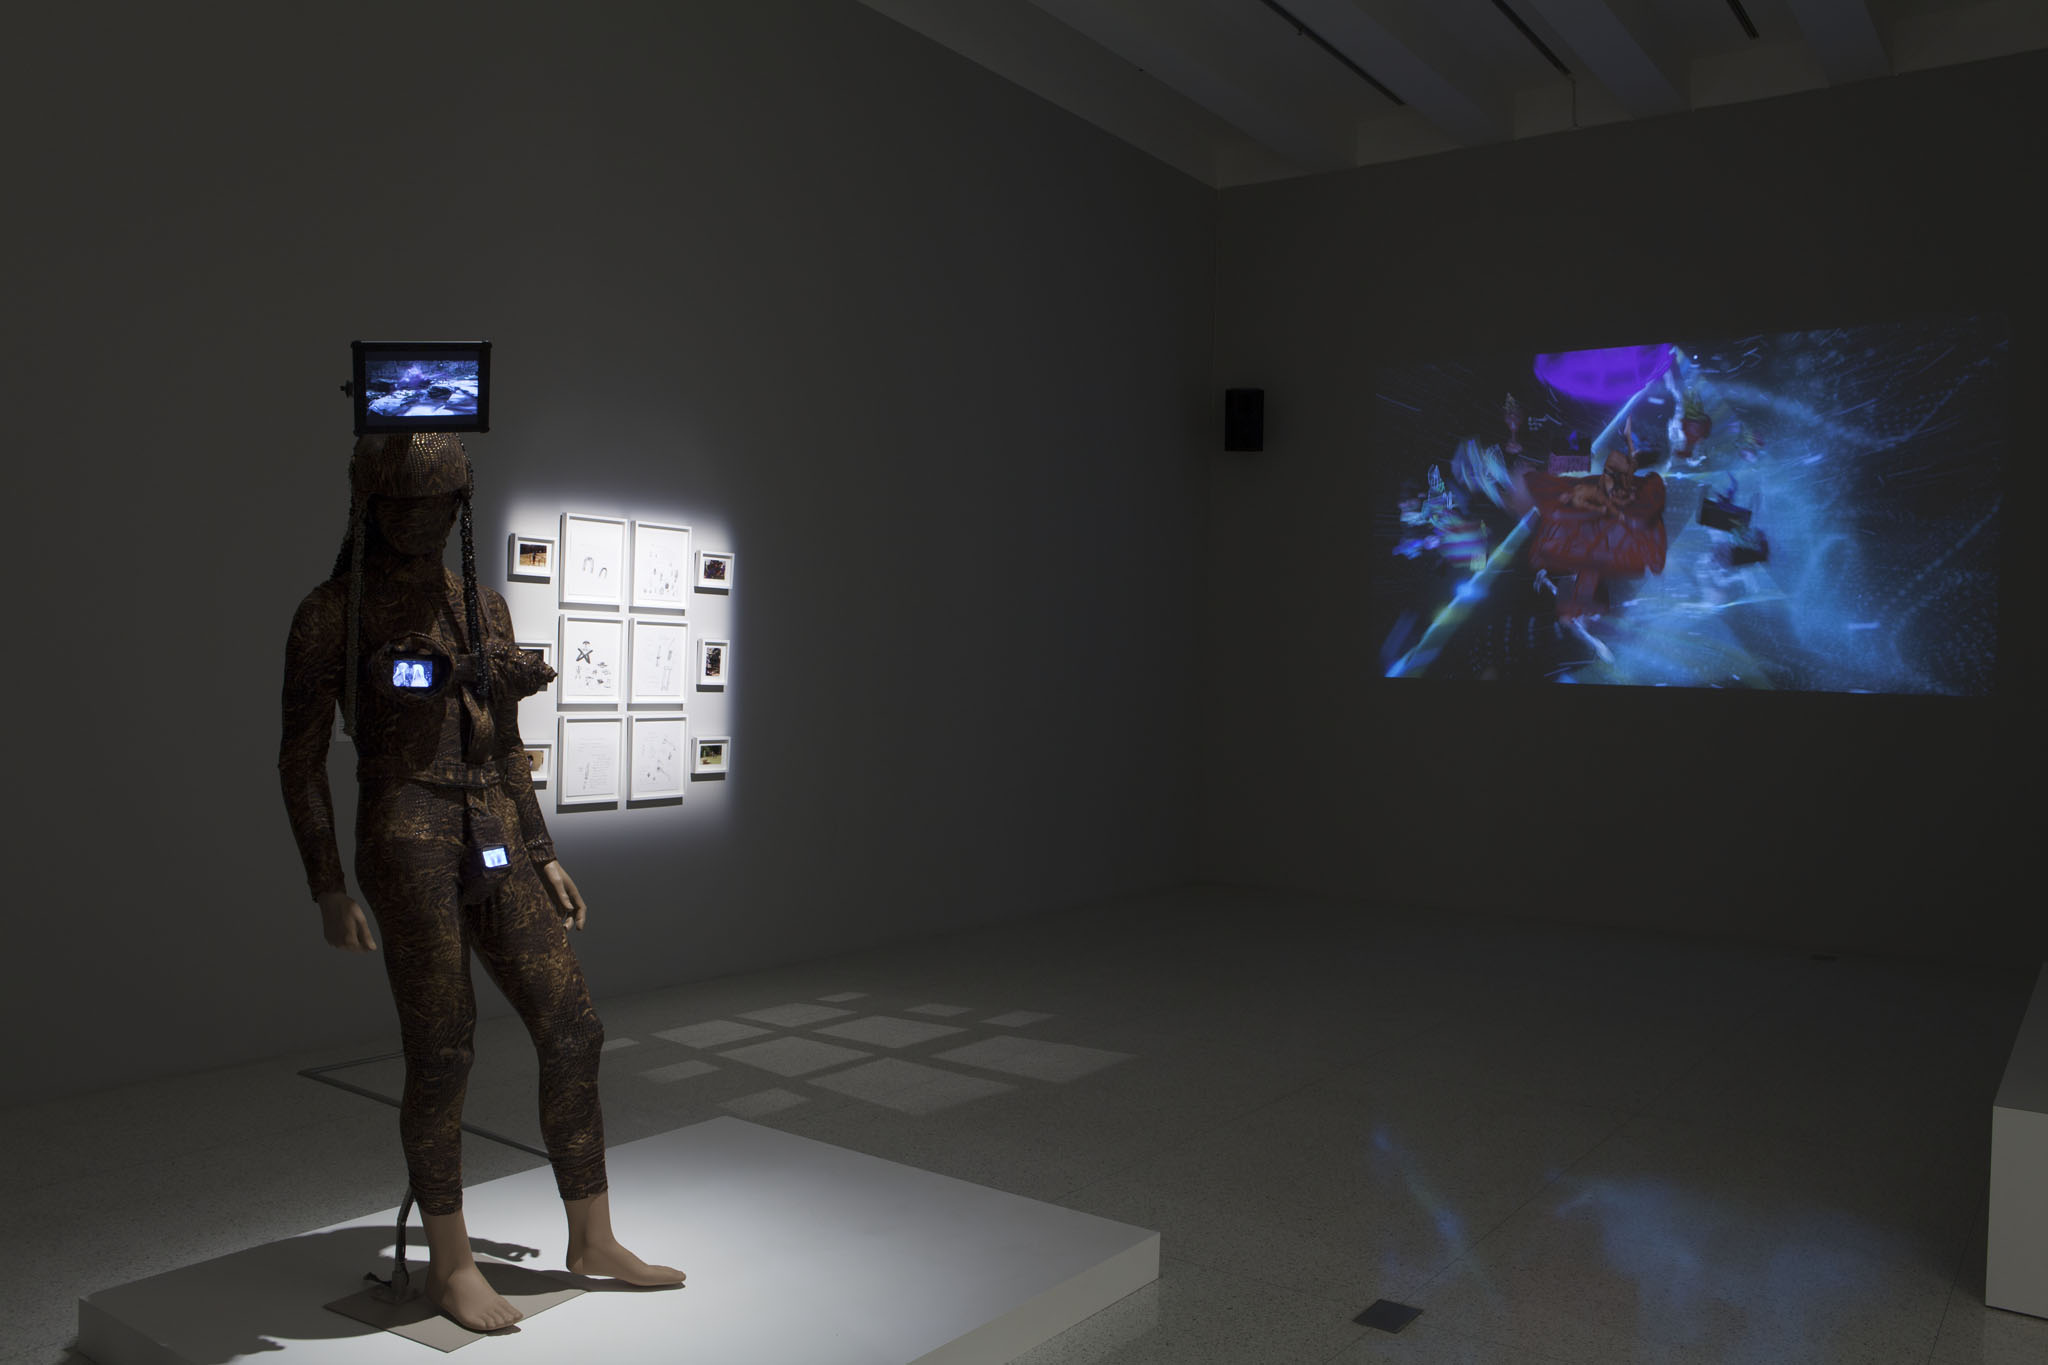 """Installation View of Satellites at Studio Museum in Harlem"". Photo courtesy of the artist."